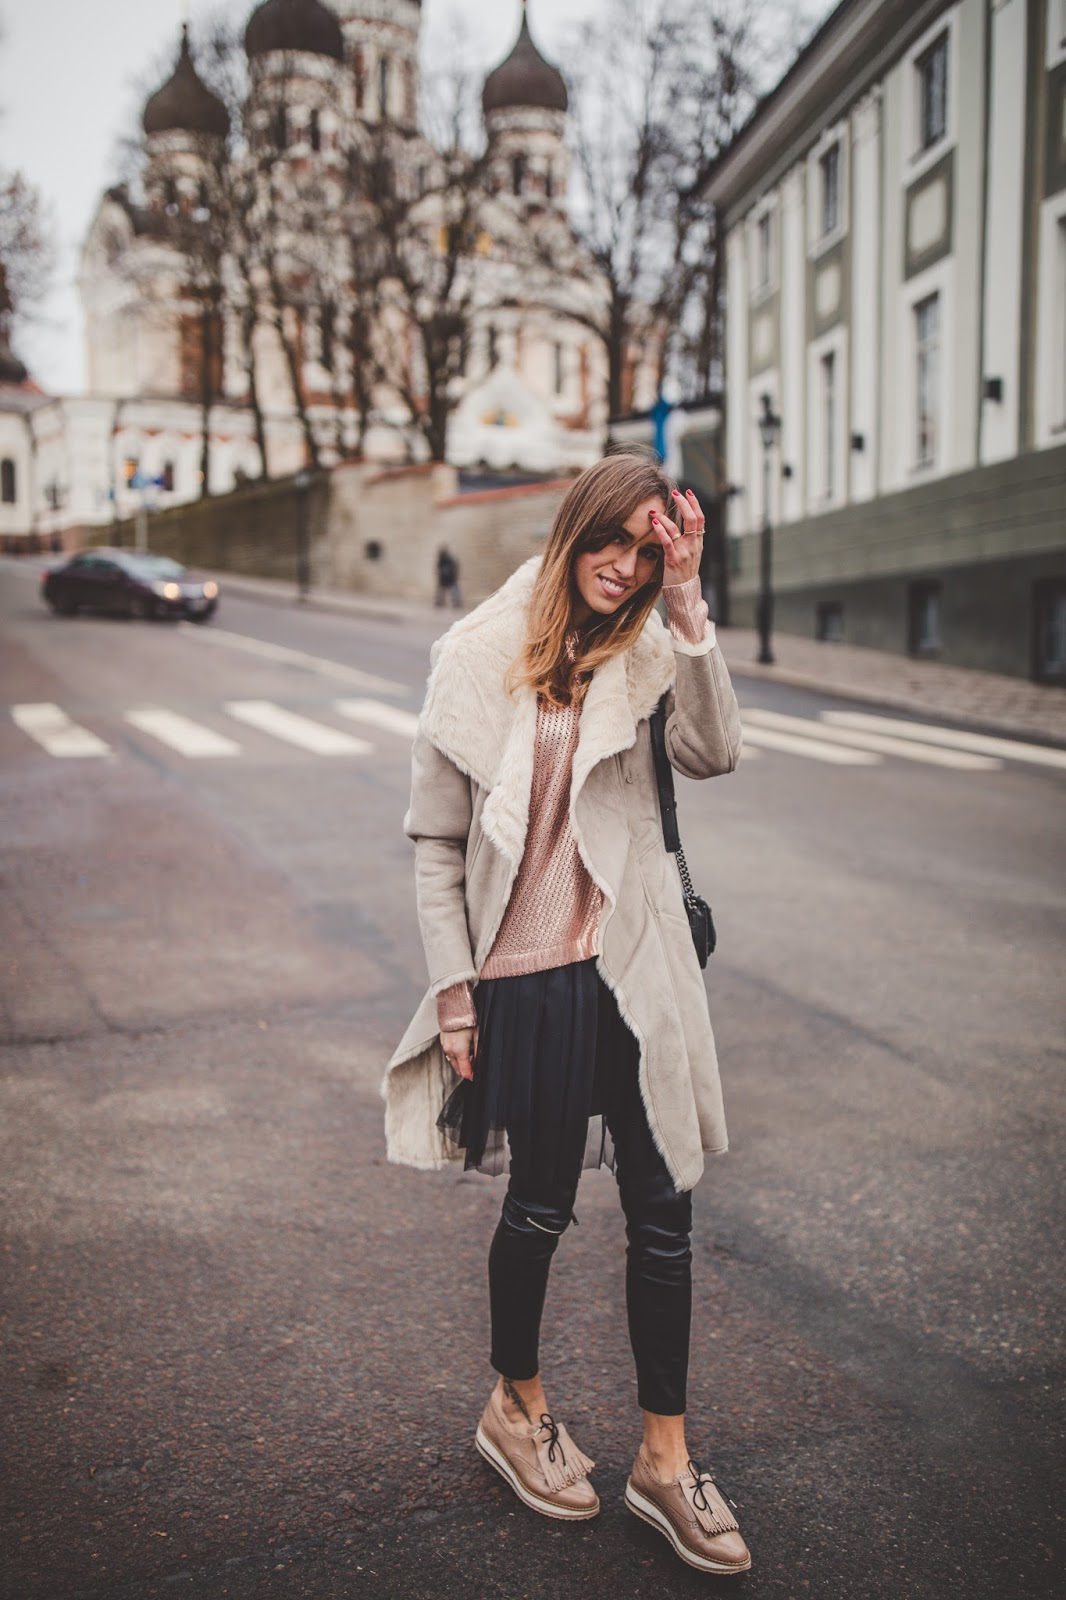 shearling coat dress over leather pants fall street style